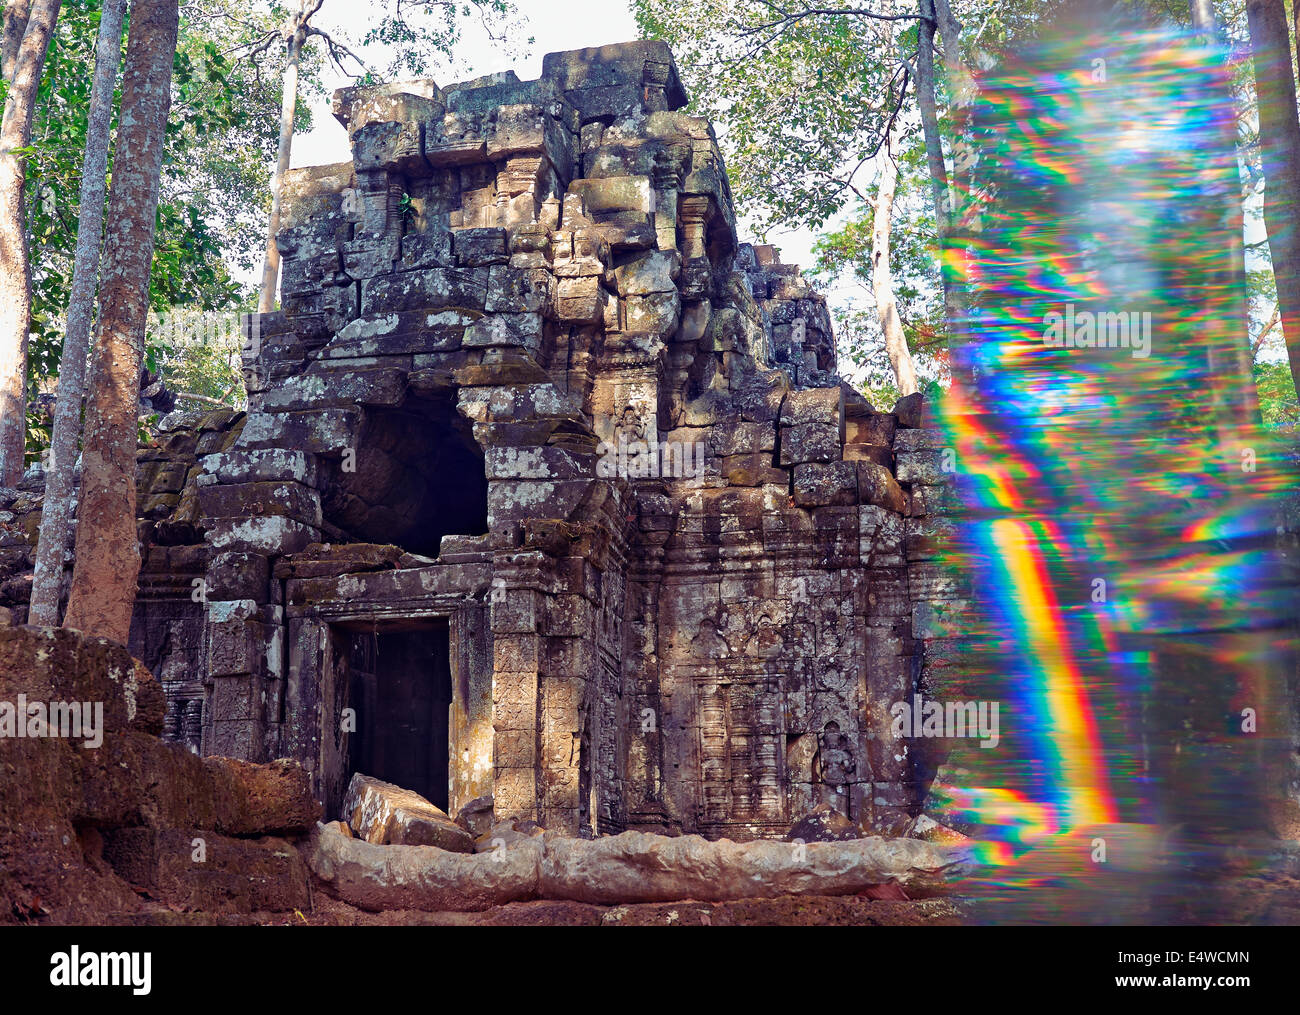 a ruined temple in the woods at Angkor Wat, shot through a prism - Stock Image